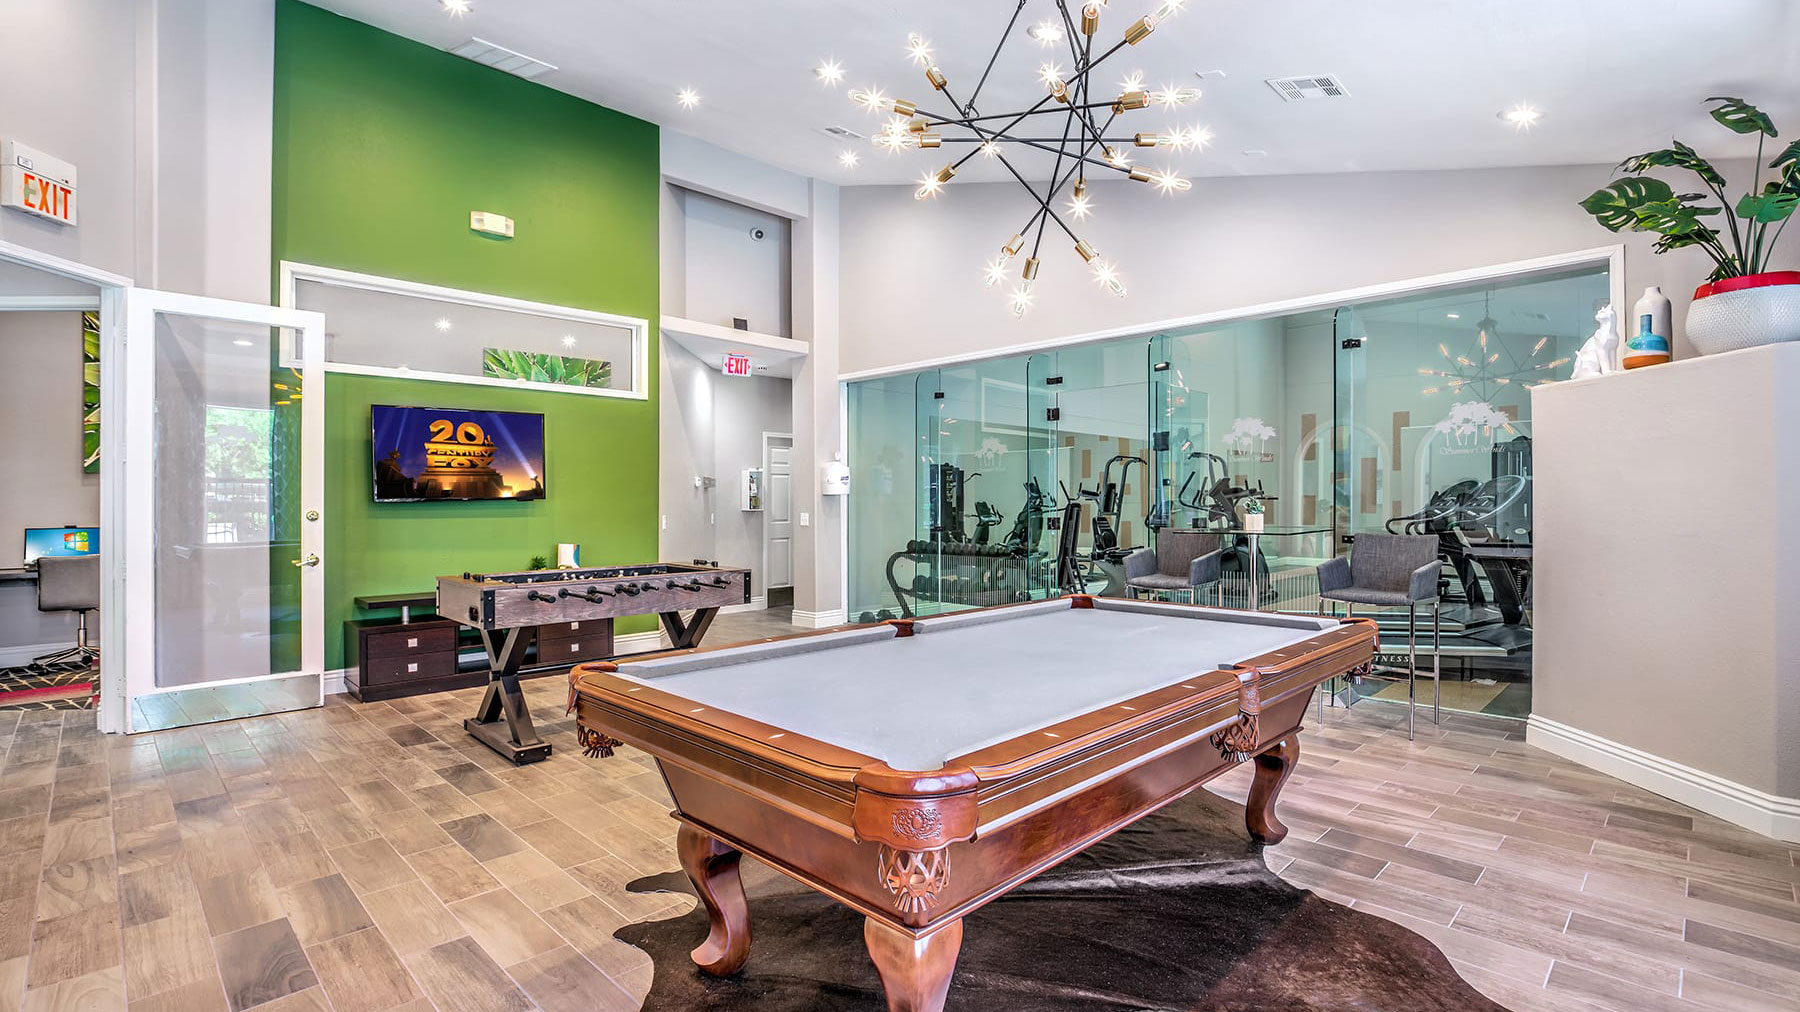 Spacious community entertainment and game room with pool table, foosball table, and flat-screen TV. Behind this area is the fitness center, separated by a glass wall.